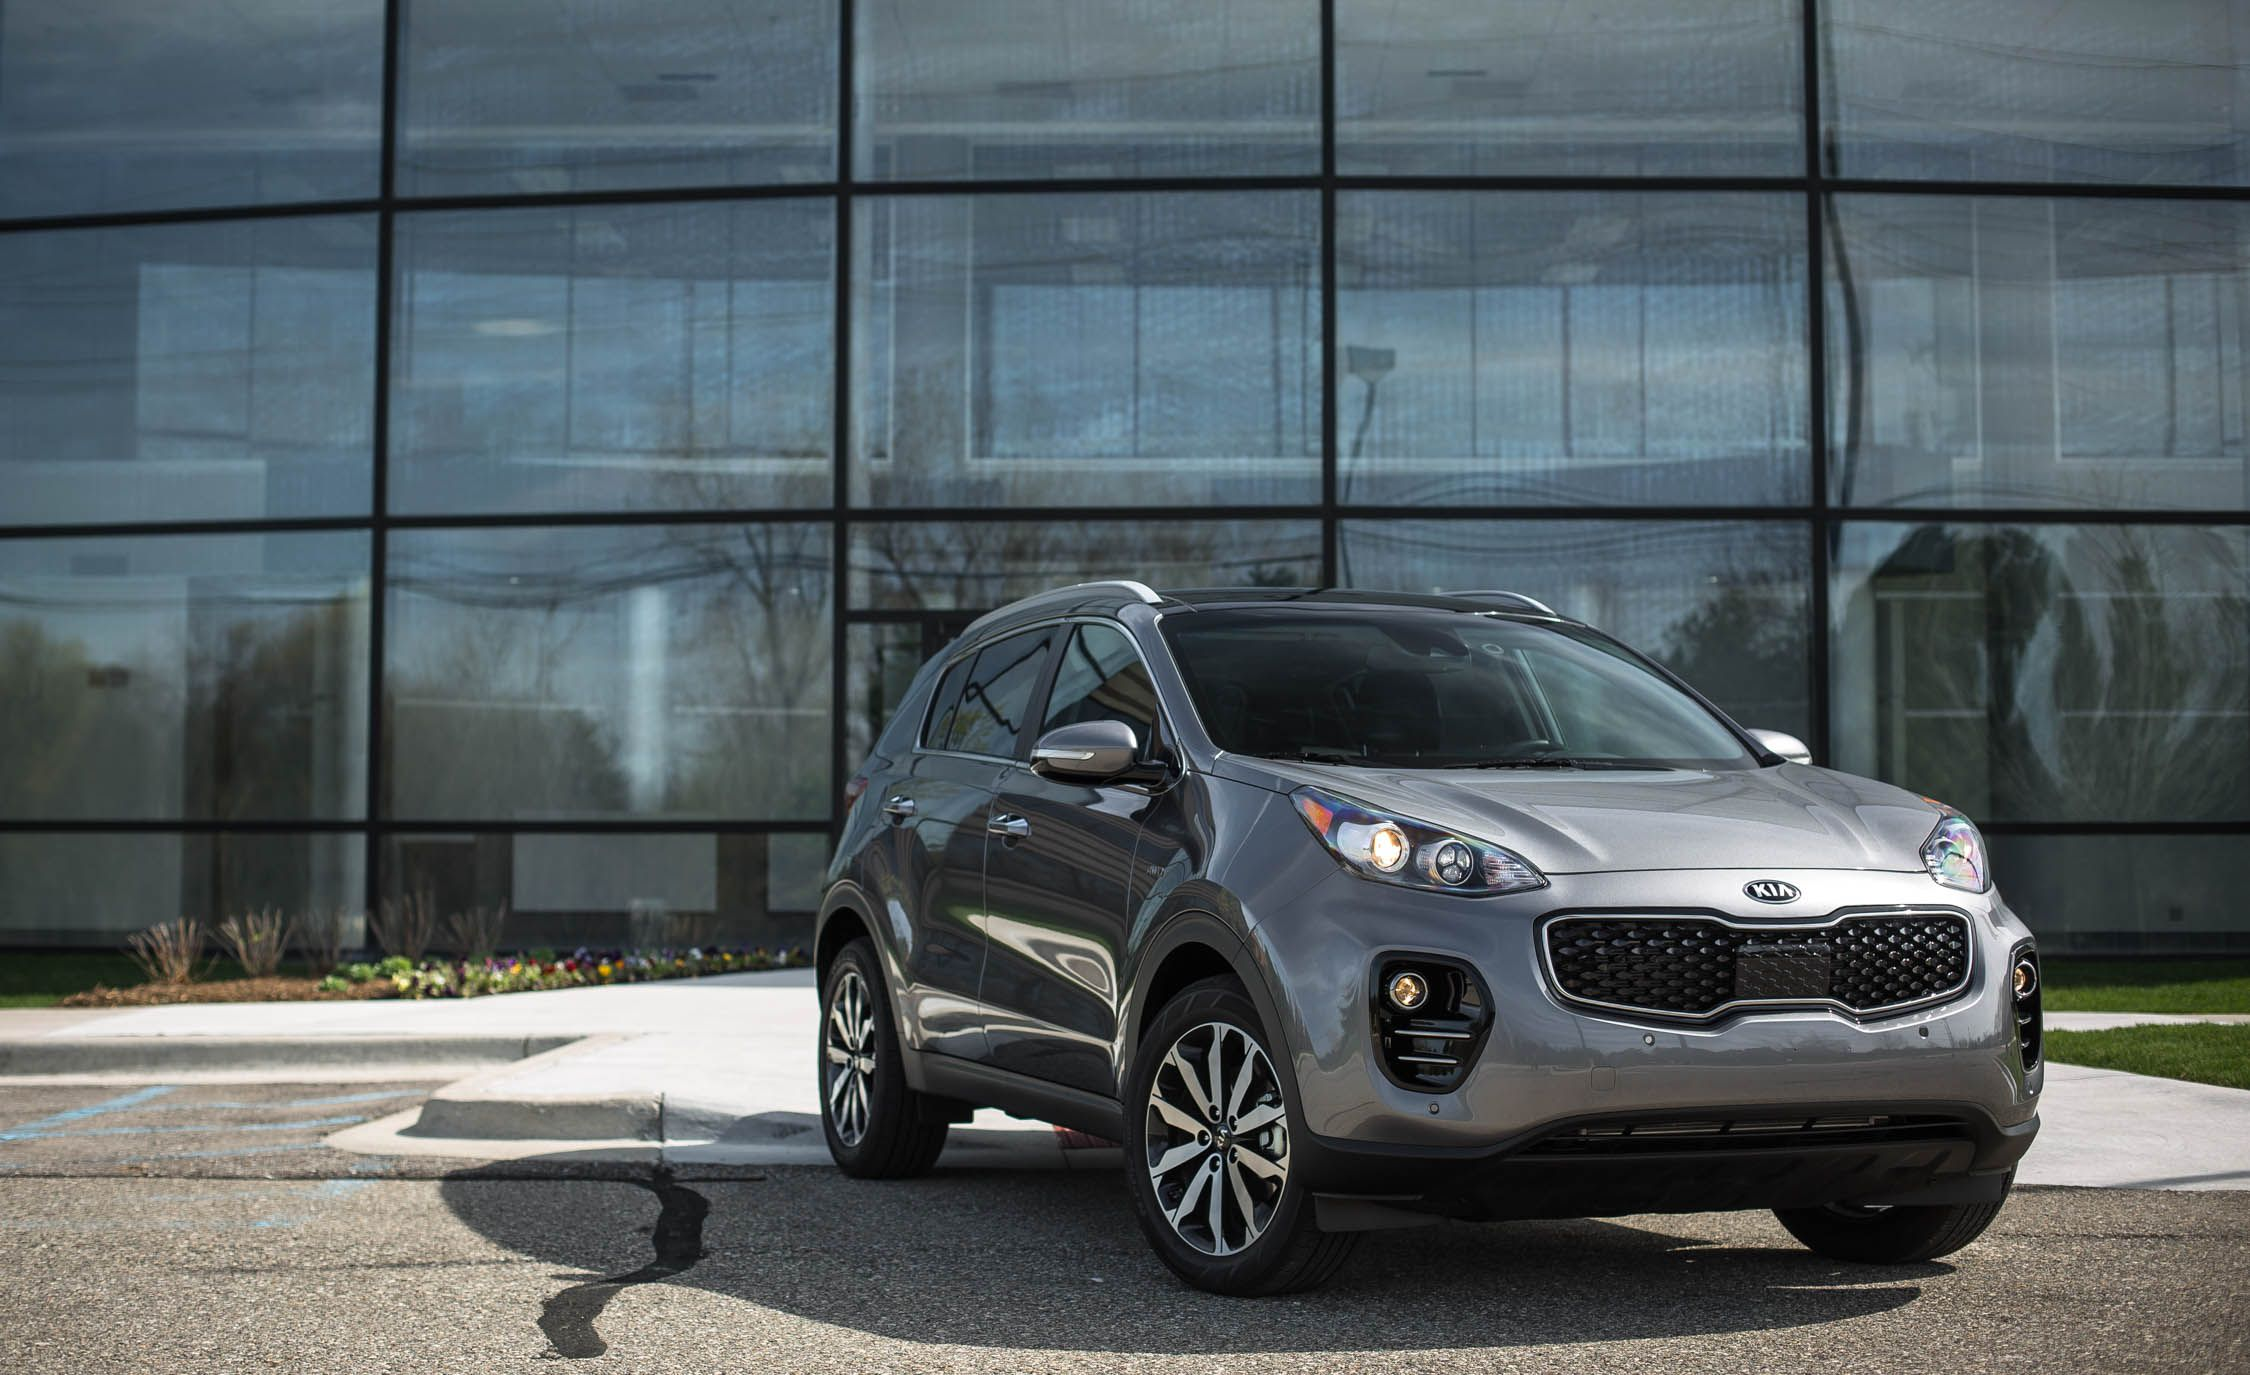 2018 kia sportage exterior review car and driver. Black Bedroom Furniture Sets. Home Design Ideas